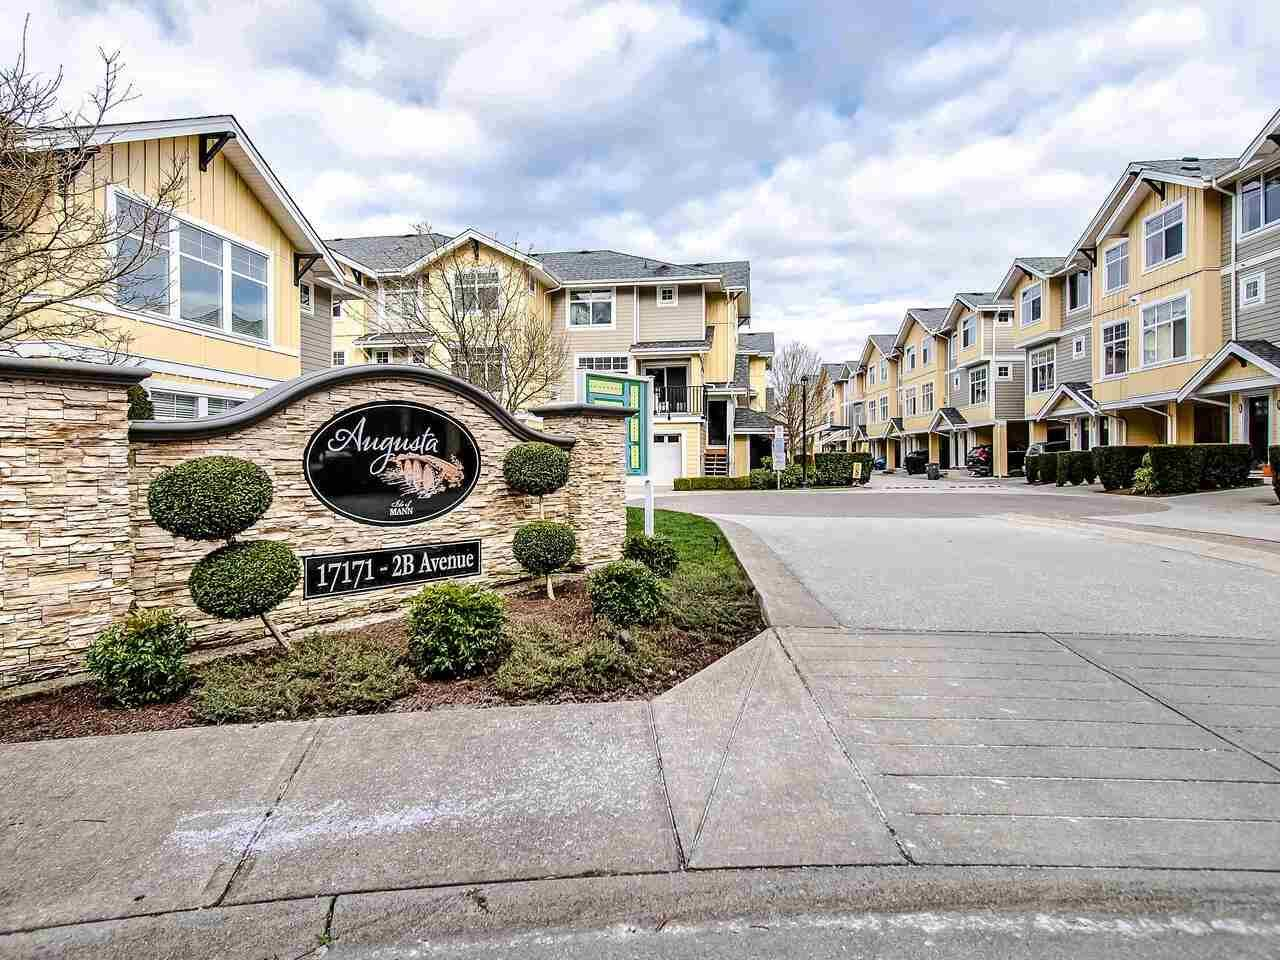 """Main Photo: 17 17171 2B Avenue in Surrey: Pacific Douglas Townhouse for sale in """"Augusta"""" (South Surrey White Rock)  : MLS®# R2539567"""